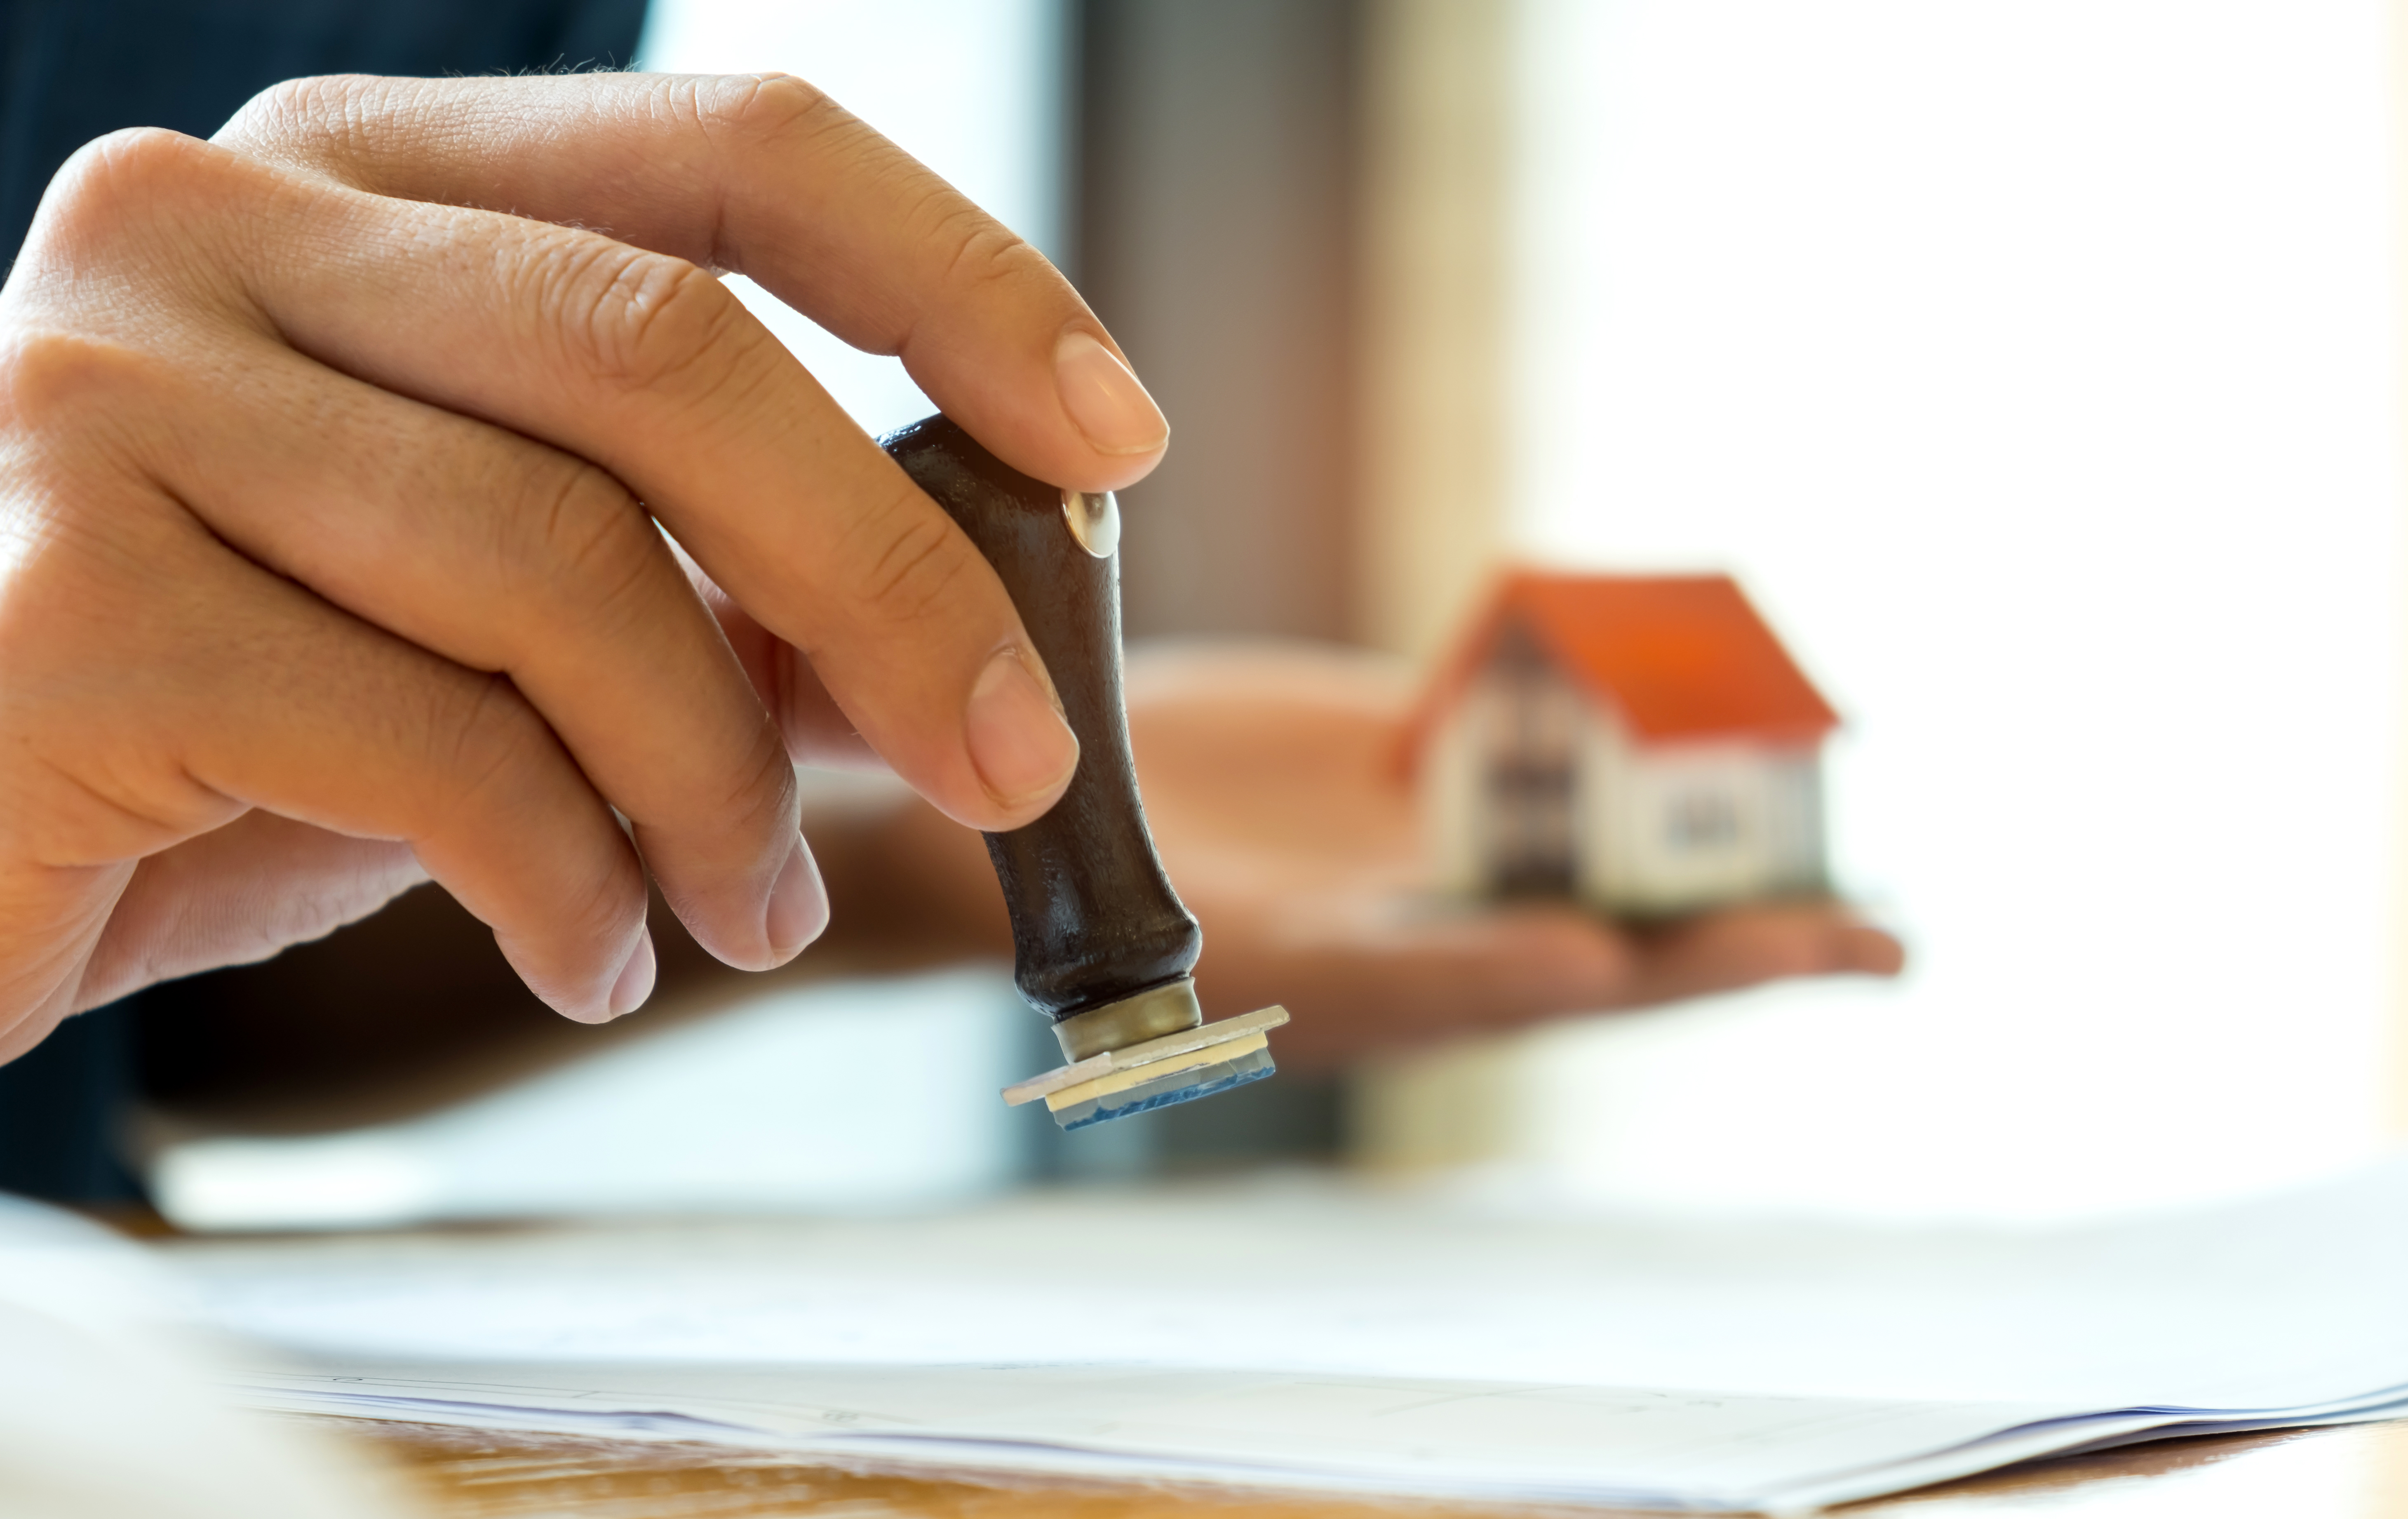 close-up-rubber-stamp-and-model-house-in-hand-P7PRWV3